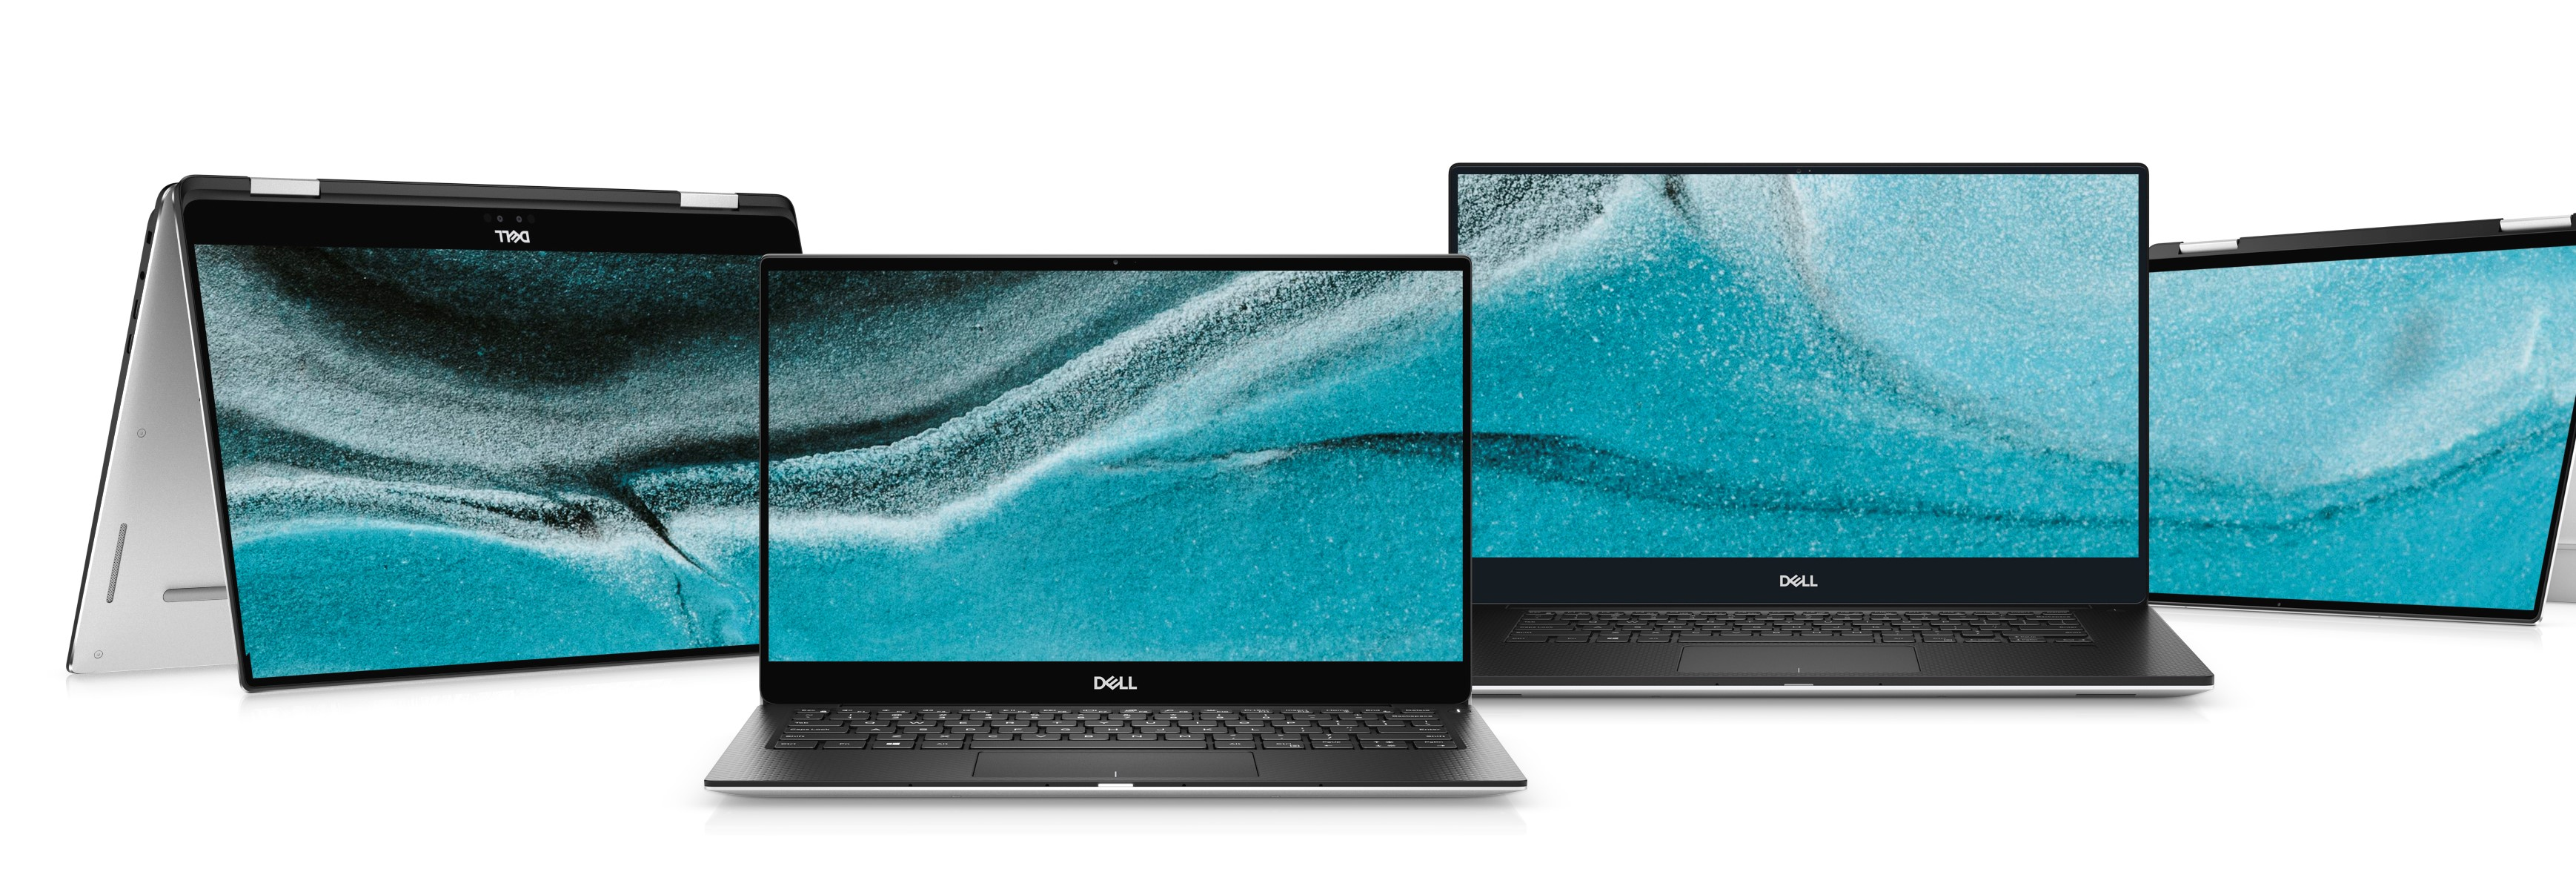 Dell refreshes XPS 13, Inspiron and Vostro lineup of laptops